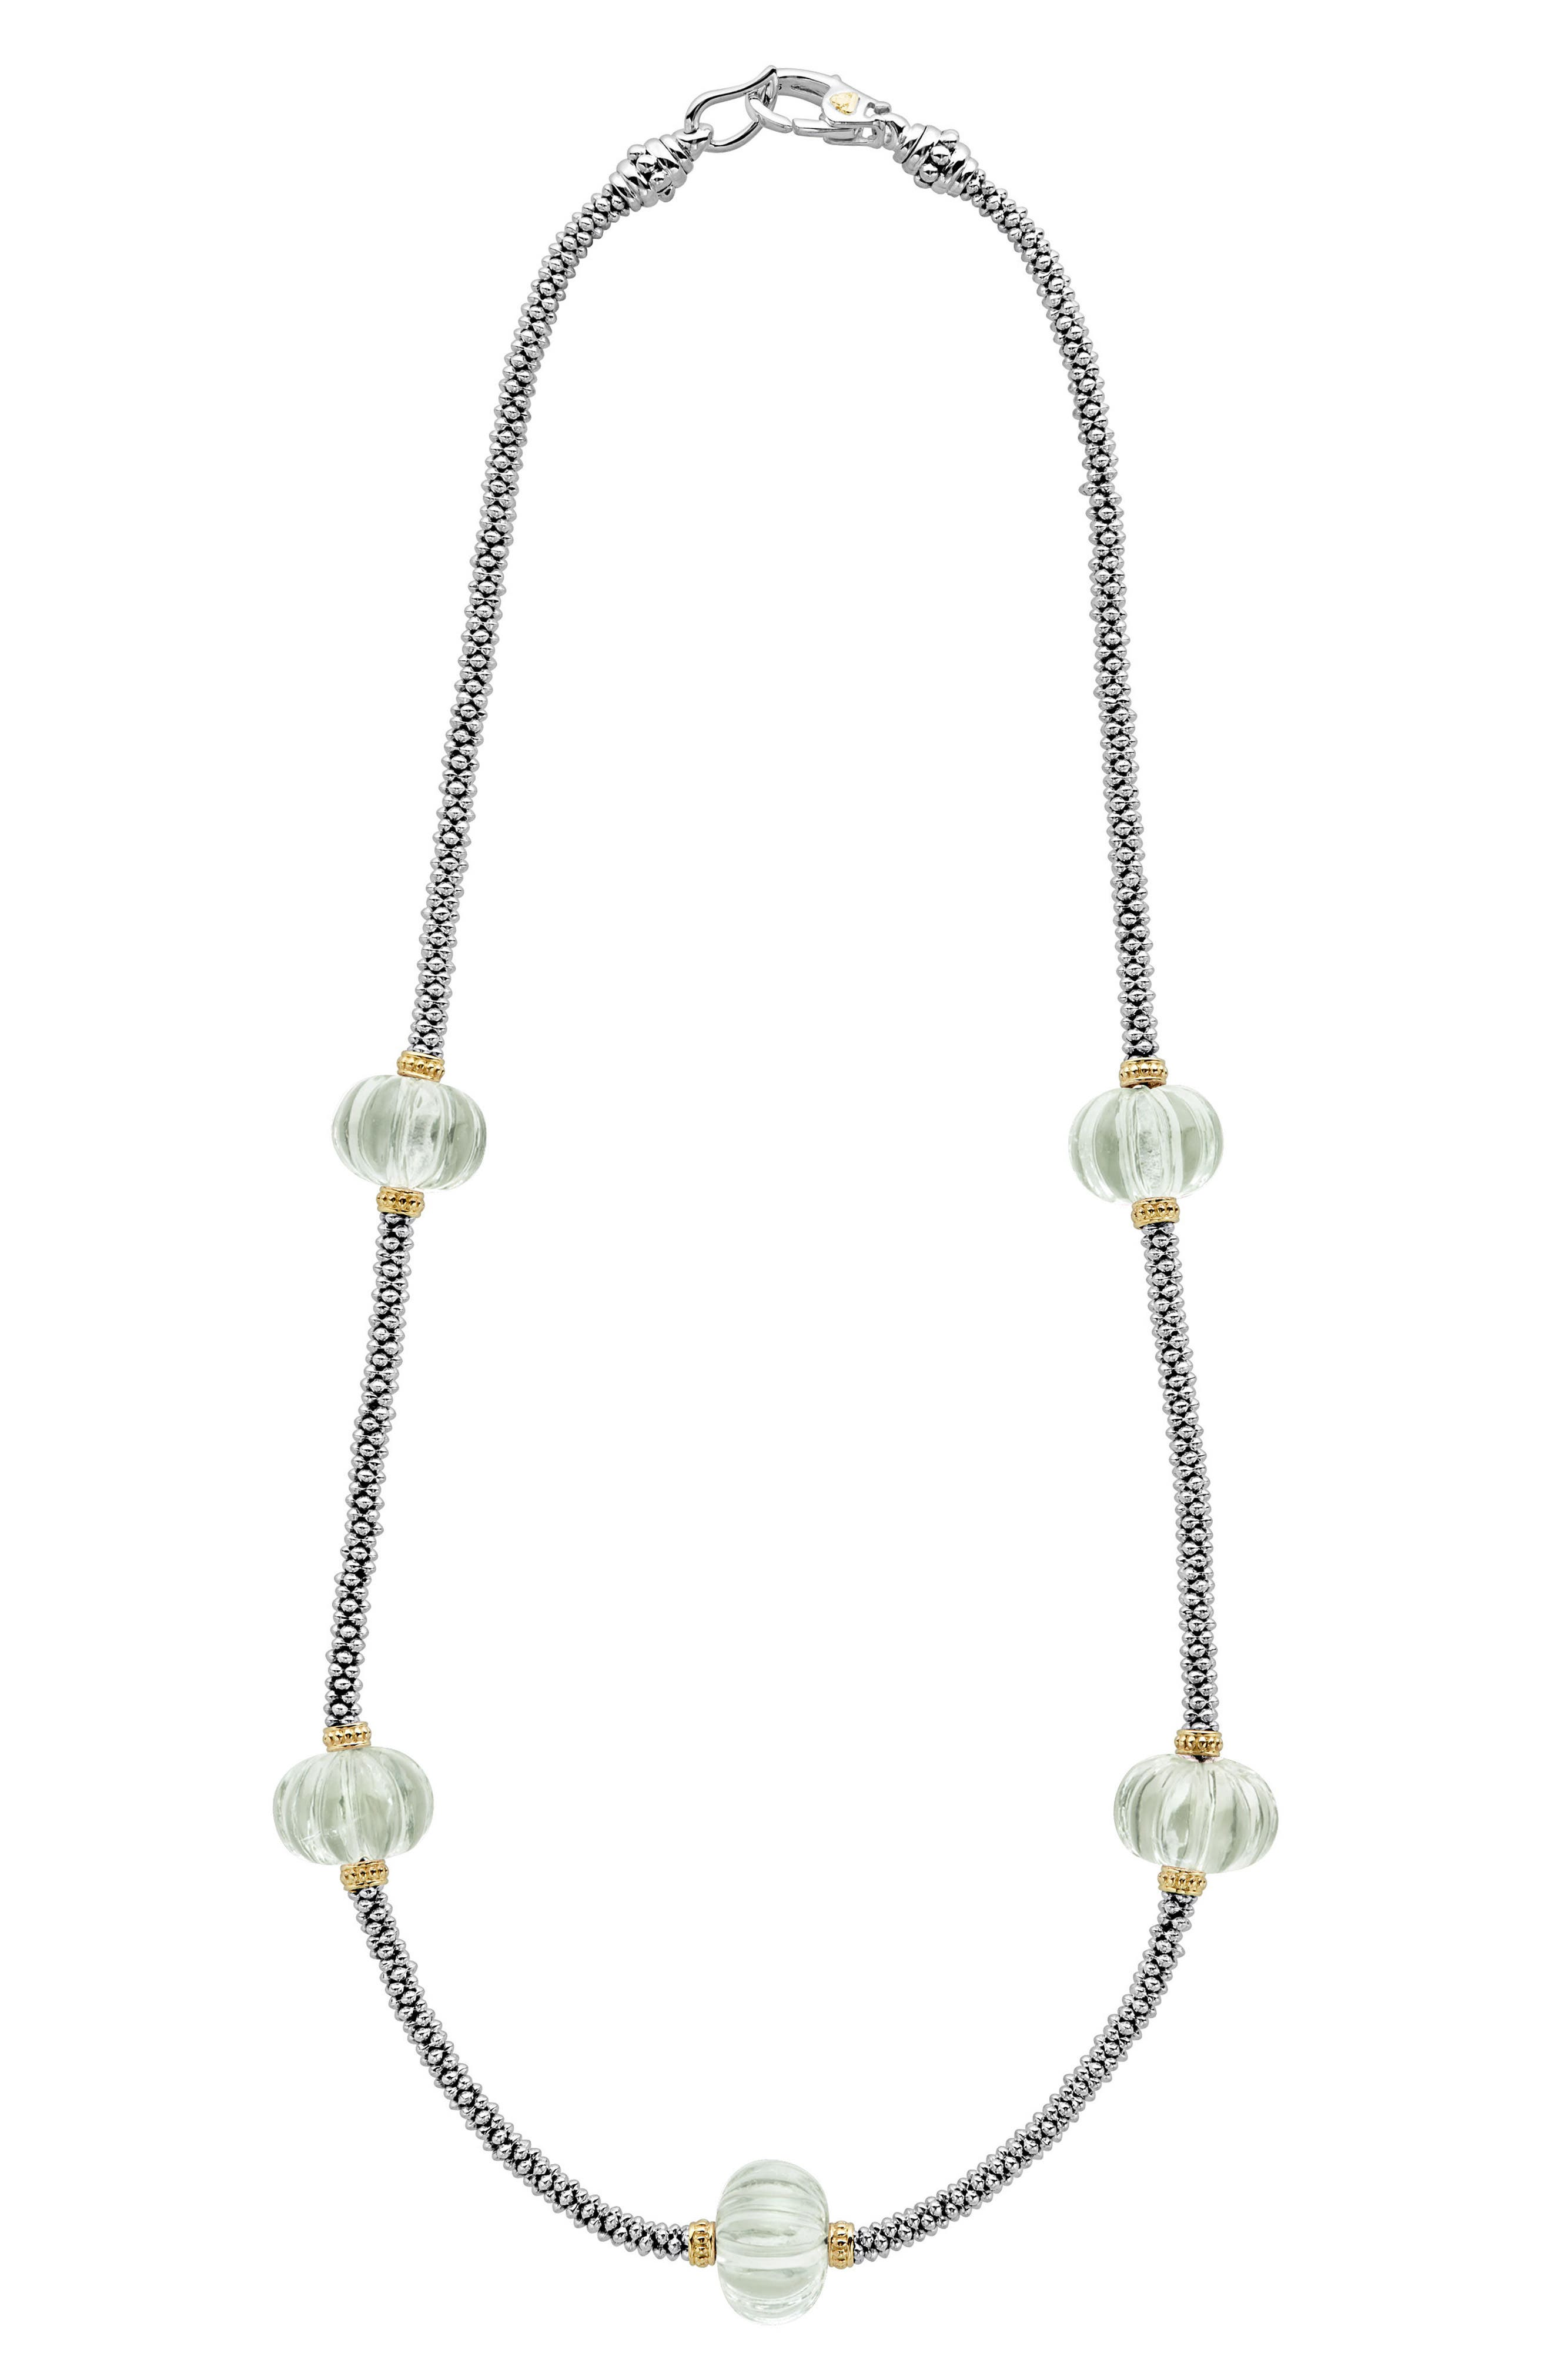 Caviar Forever Gemstone Melon Bead Rope Necklace,                             Main thumbnail 1, color,                             300